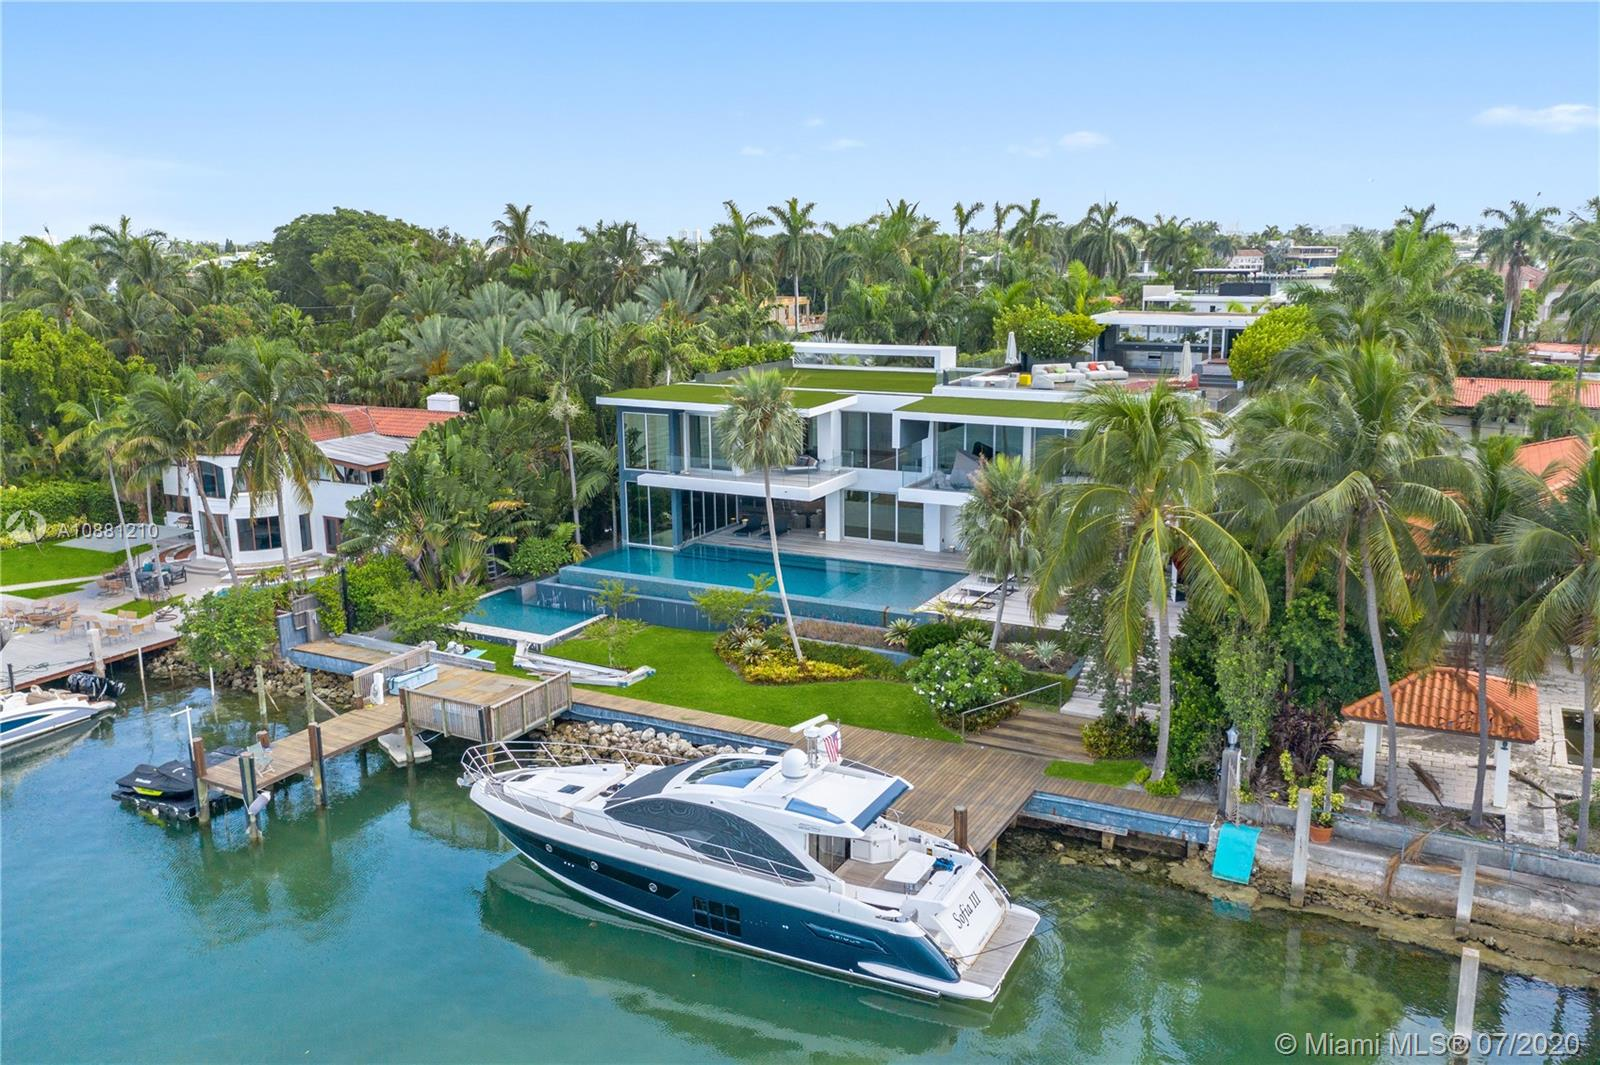 Exclusive Hibiscus Island Miami Beach modern architectural gem built 2016 on double lot w/122 ft of water frontage, South orientation. Designed by renowned architect Reinaldo Borges & landscape architect Raymond Jungles. 5B/5B + powder rm, white wood marble slab floors on 1st flr, wood plank floors on 2nd flr. State-of-the-art Crestron automation including all window shades, gourmet designer kitchen w/2 refrigerators Miele & SubZero, Wolf gas range, 2 wine coolers. Master bdrm w/ensuite office, 2 walk-in closets/dressing areas. Bowers & Wilkins home theatre, children's playrm, 2nd flr living area, elevator, dbl laundry rm + dry storage. 2 heated pools + sauna, cabana bthrms, outdoor living area w/complete kitchen & bar. Rooftop w/360 skyline views, jacuzzi & kitchen. 4 car garage, 2 docks.